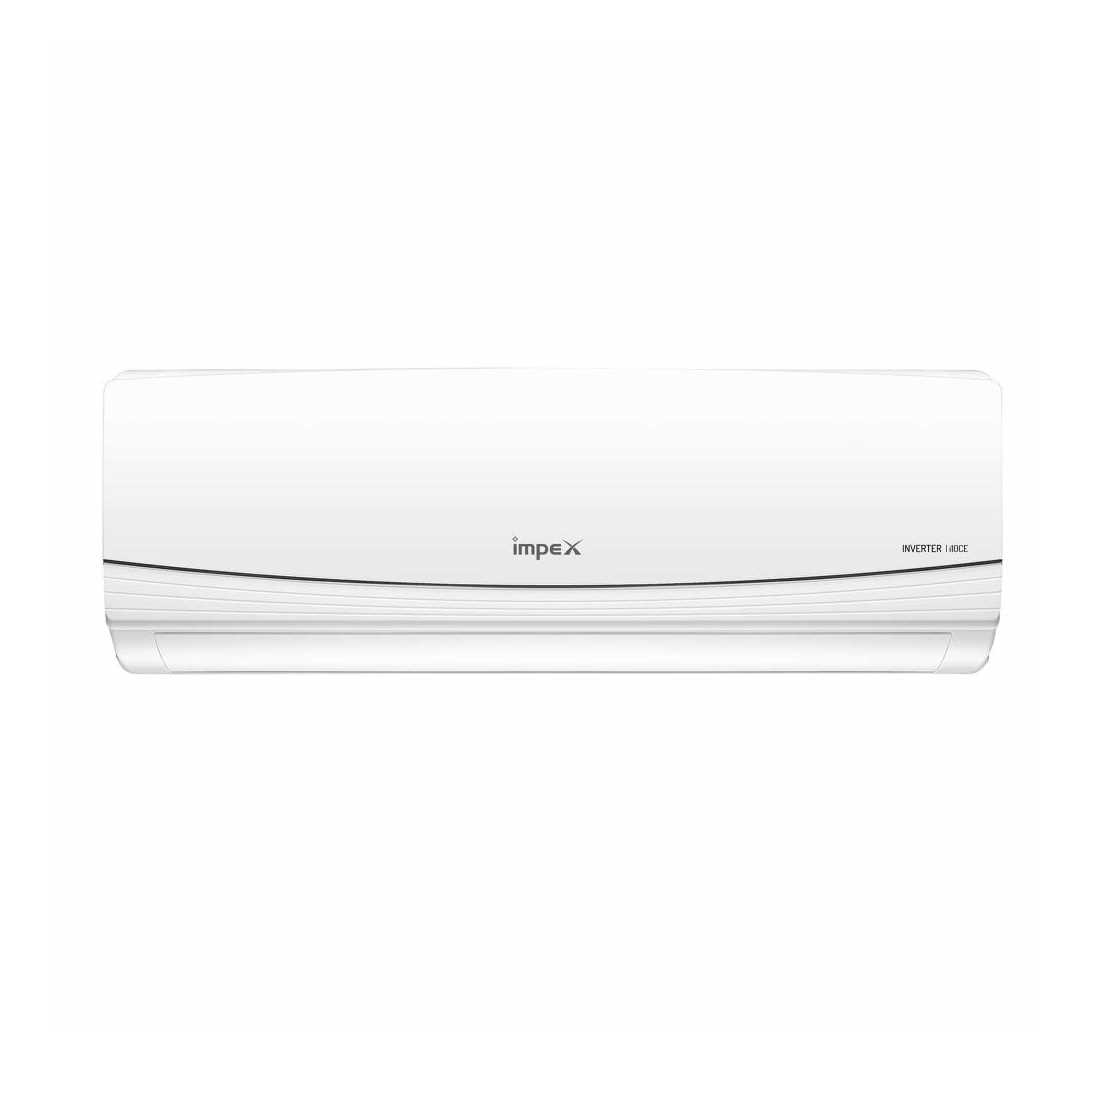 Impex i10CE 1 Ton 3 Star Inverter Split AC